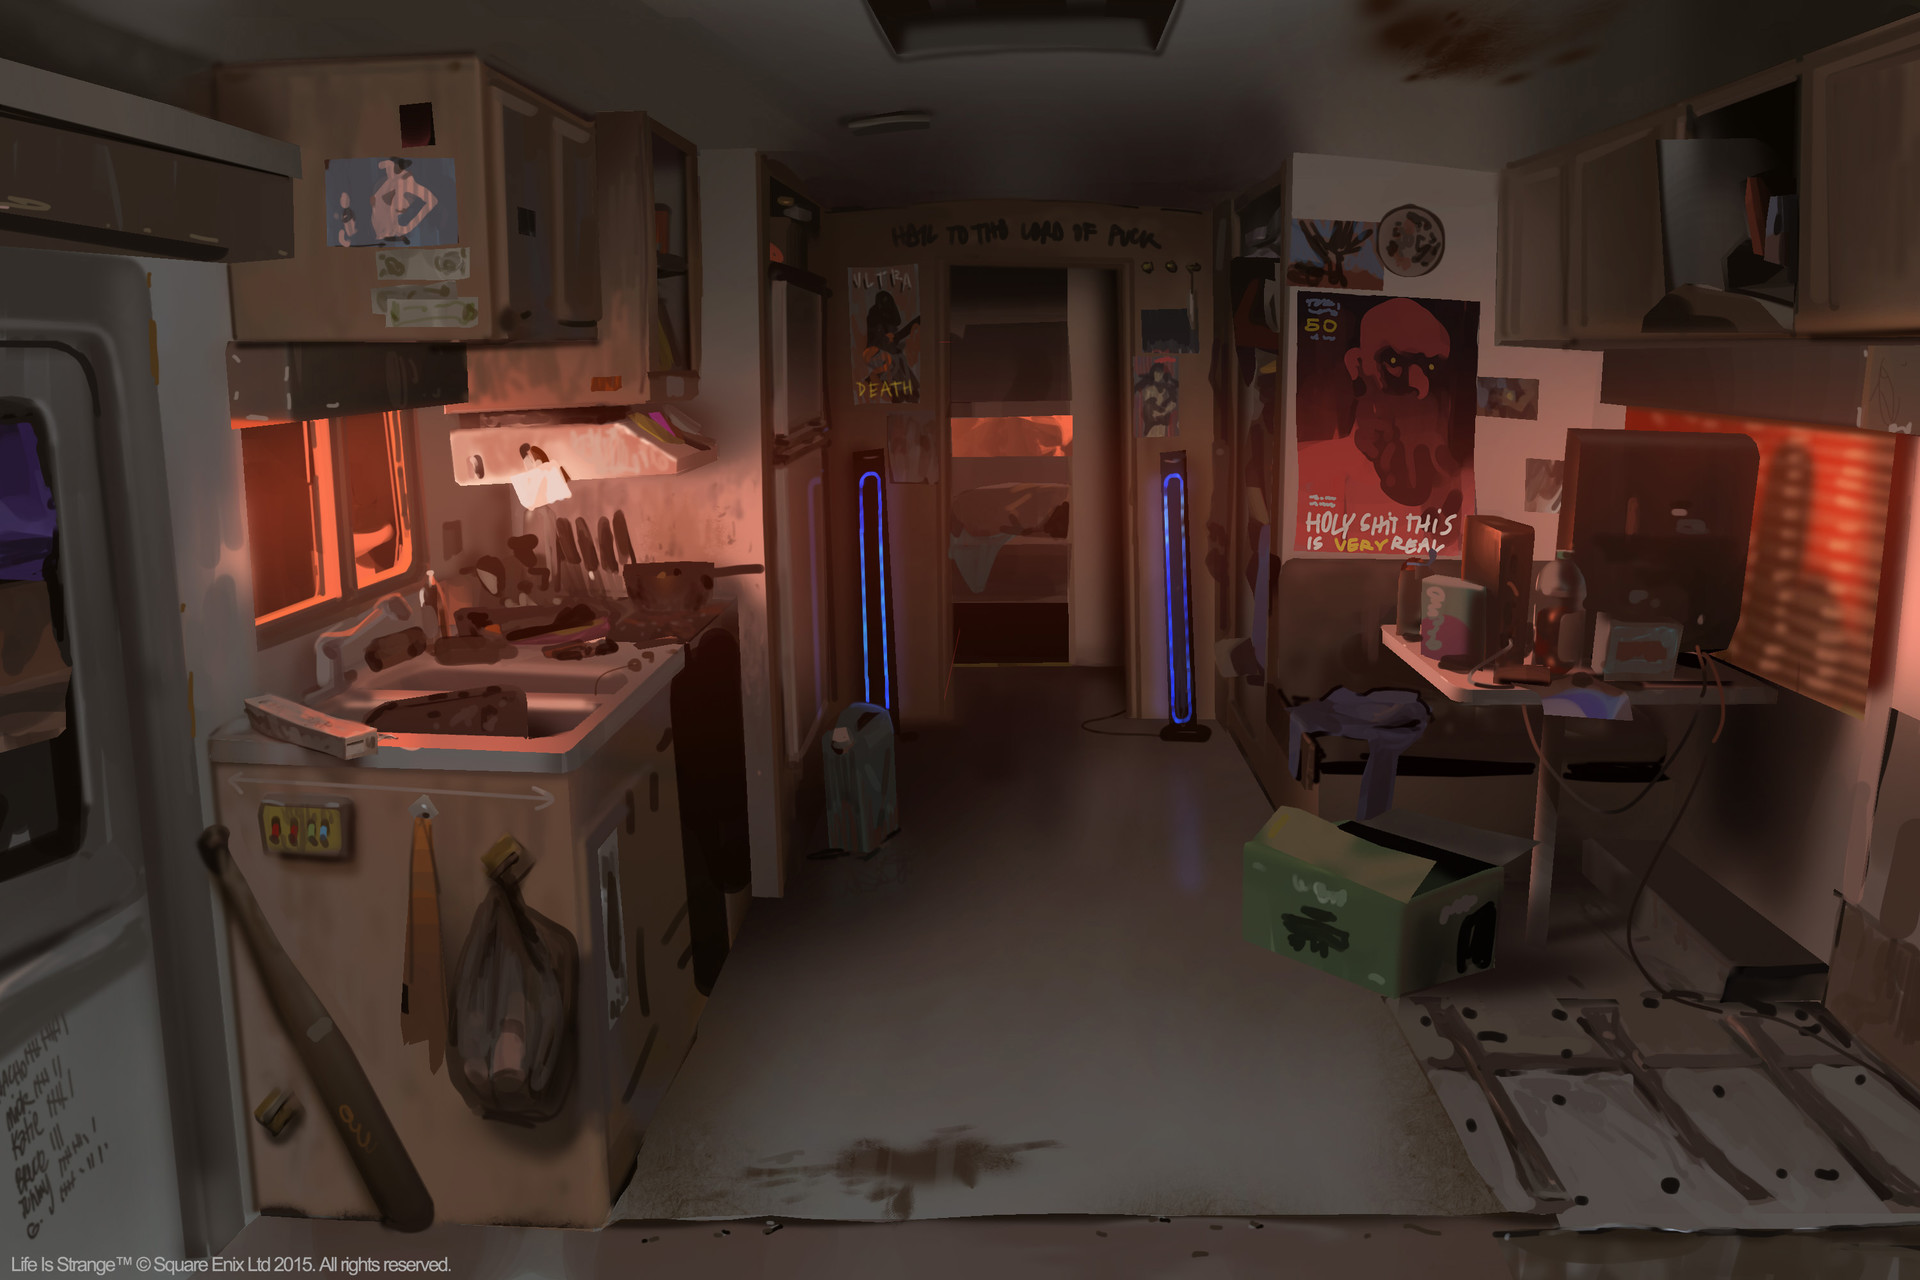 Life Is Strange Concept Art by Edouard Caplain